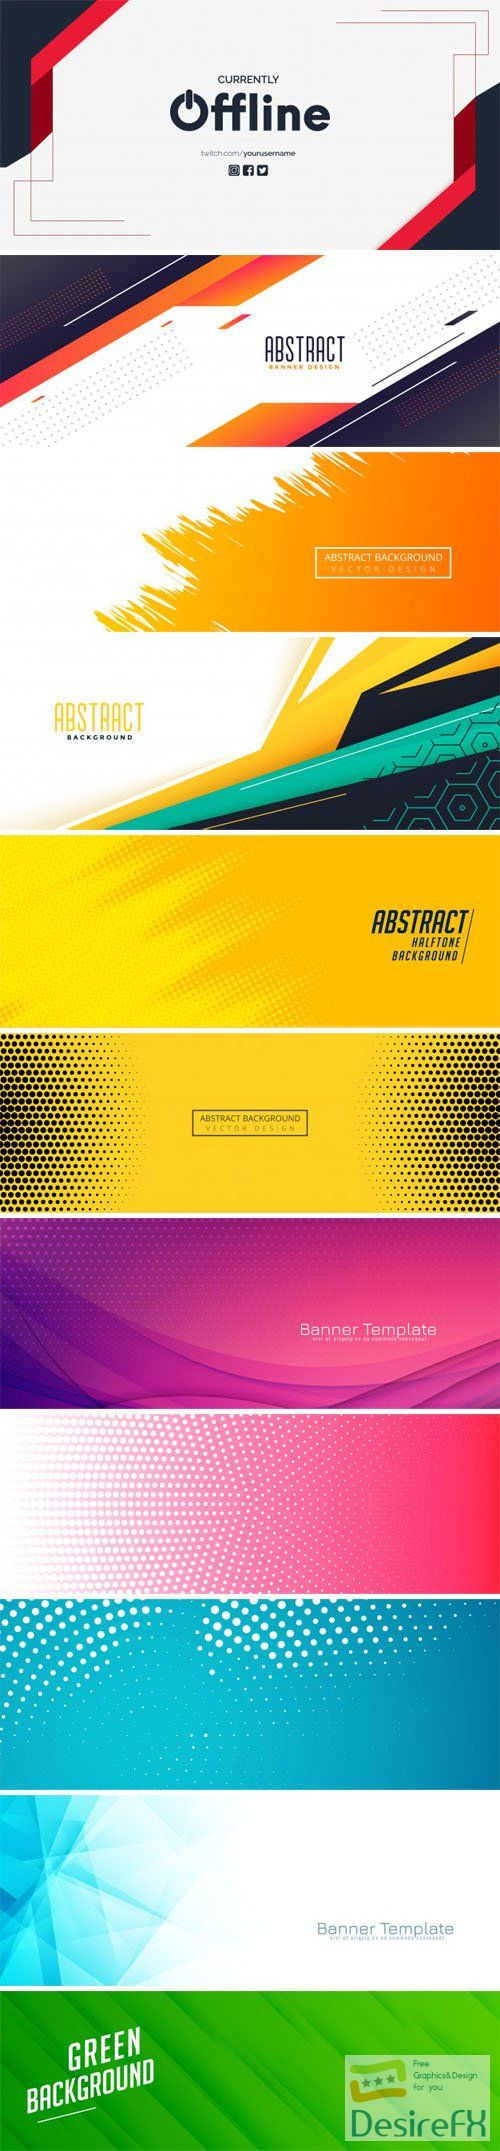 11 Abstract Banners Vector Templates